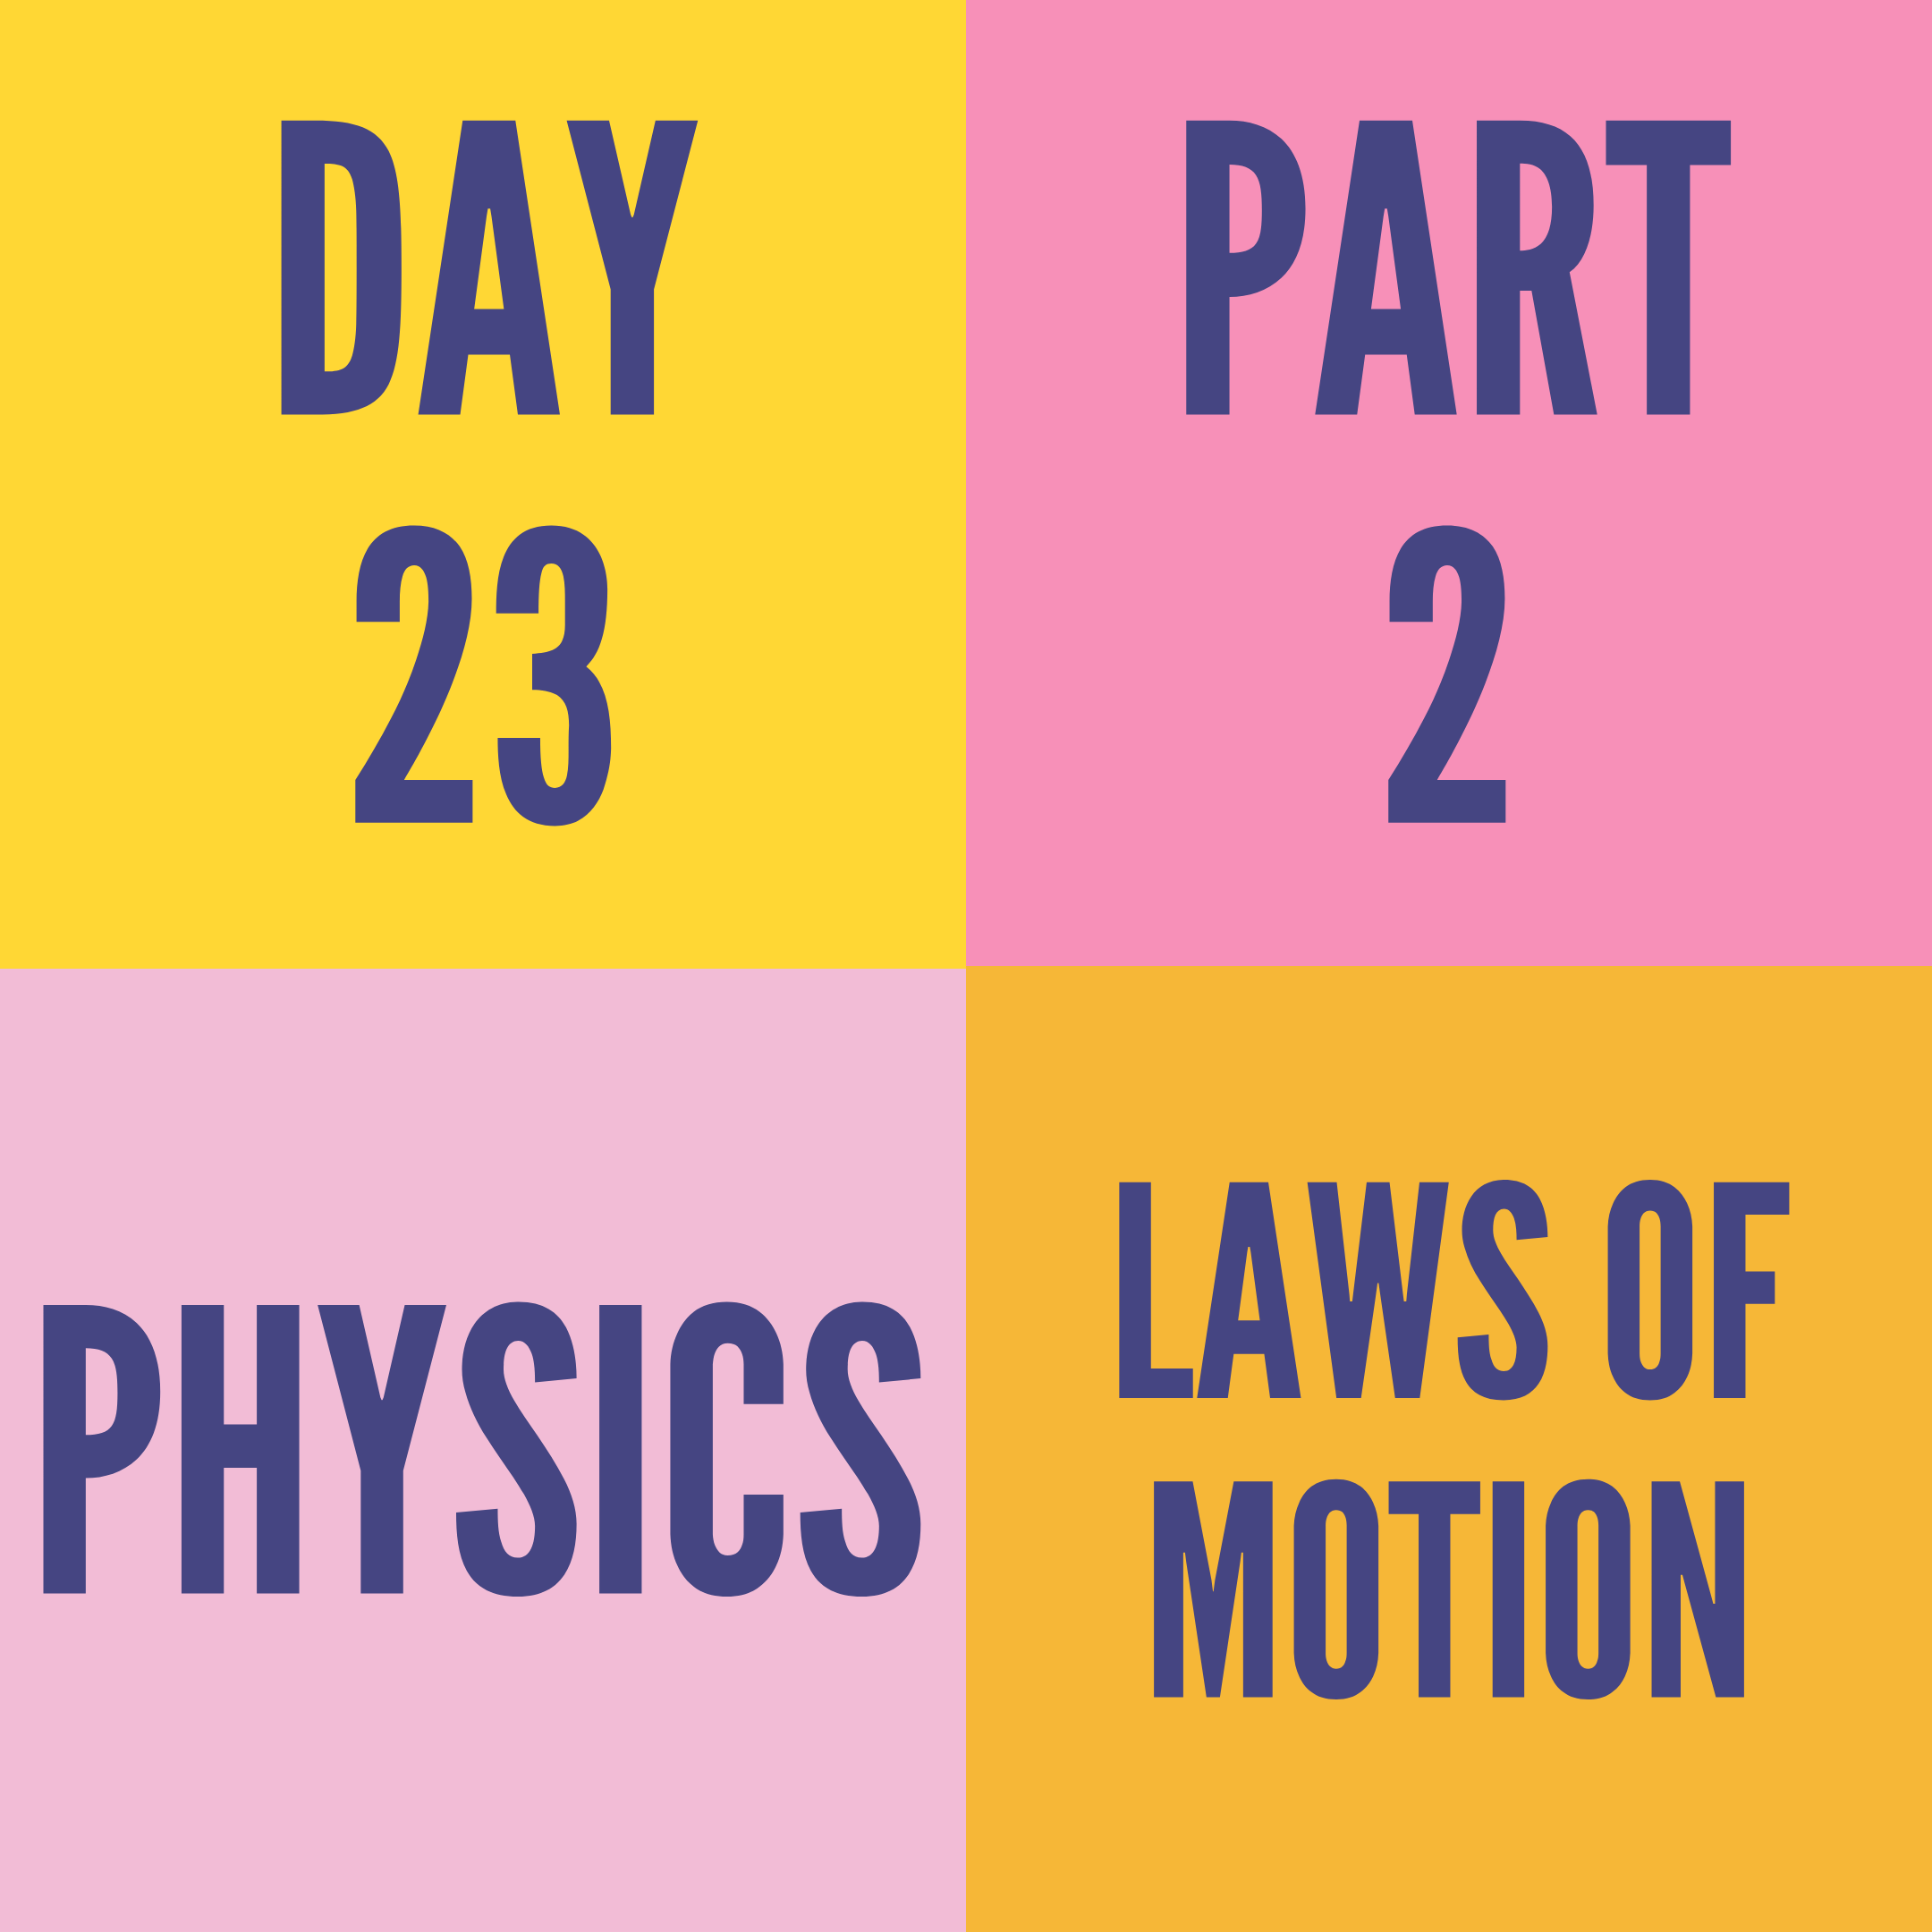 DAY-23 PART-2 LAWS OF MOTION